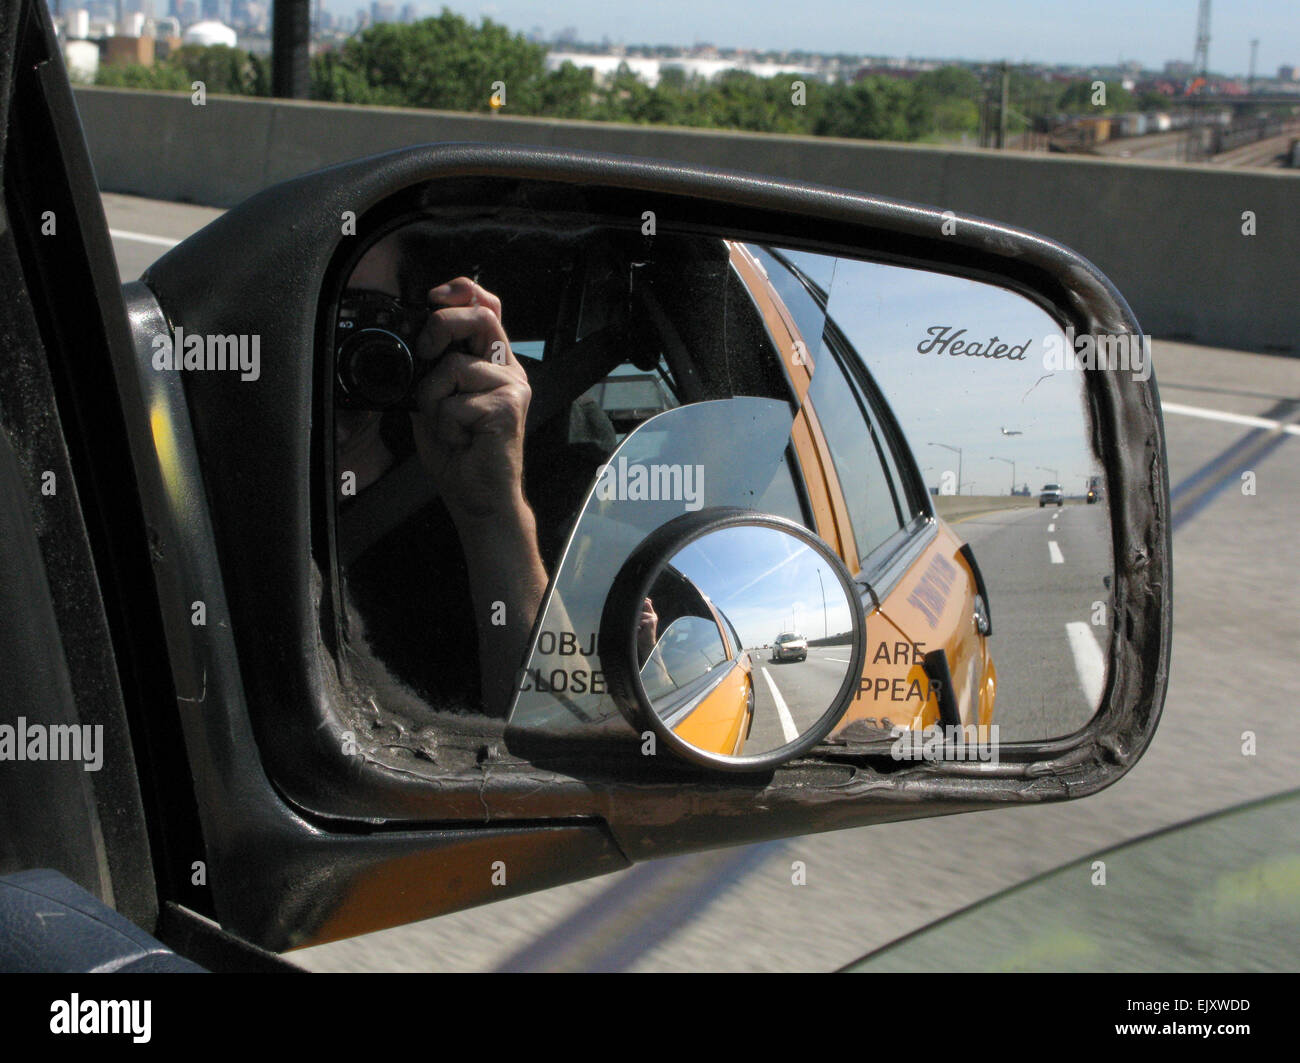 Objects In Mirror May Be Closer Than >> Objects In The Mirror May Appear Closer Than They Are Driving Into